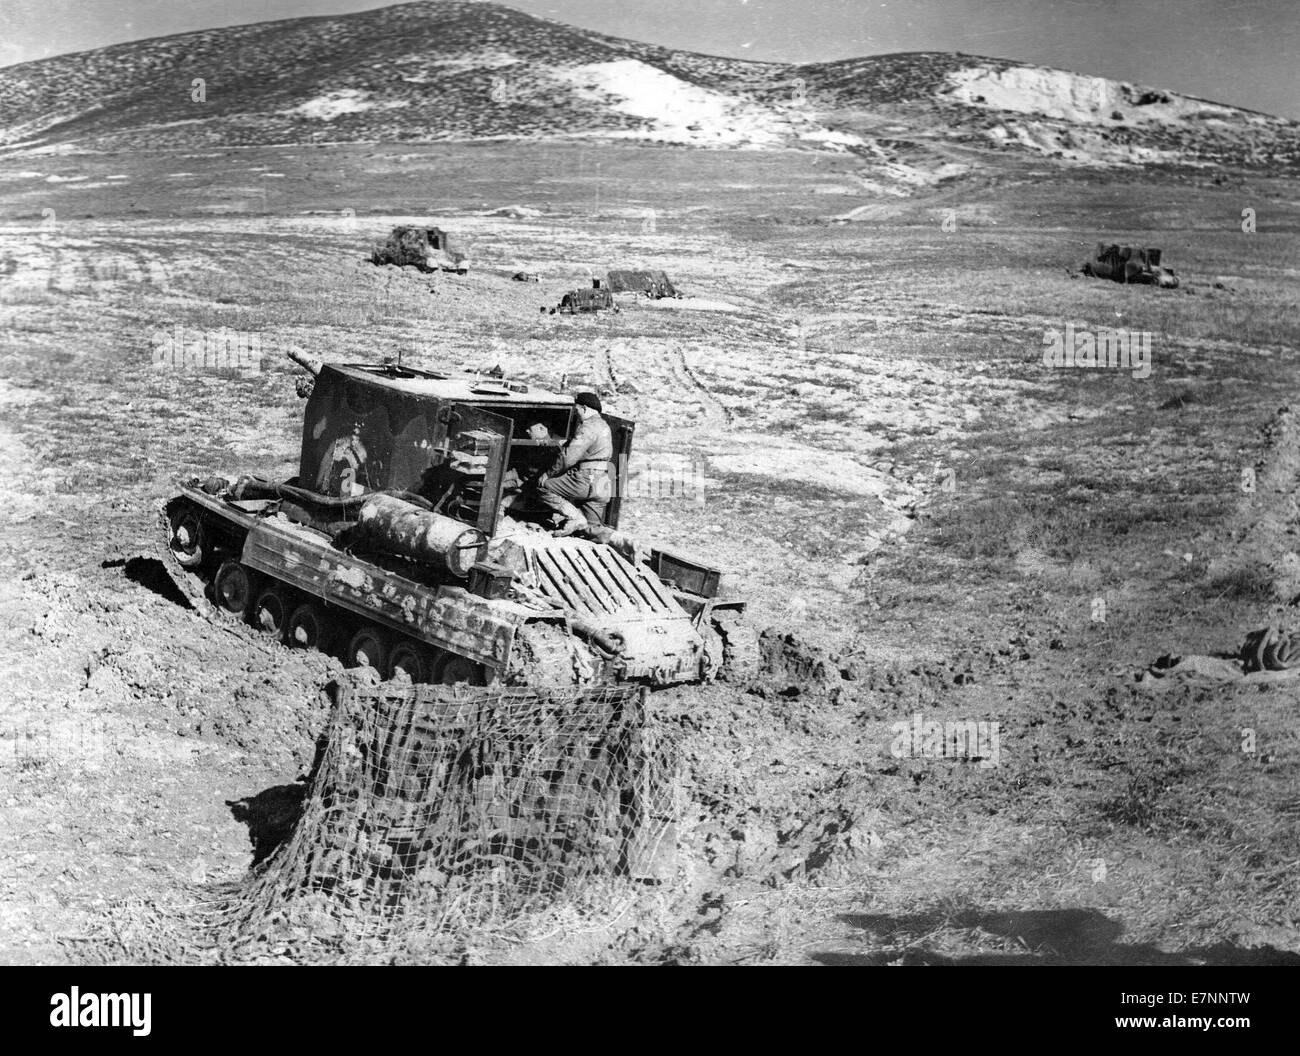 Tunisia. Bishop 25 pounder self-propelled guns in action near Grenadier Hill, 23 March 1943. - Stock Image